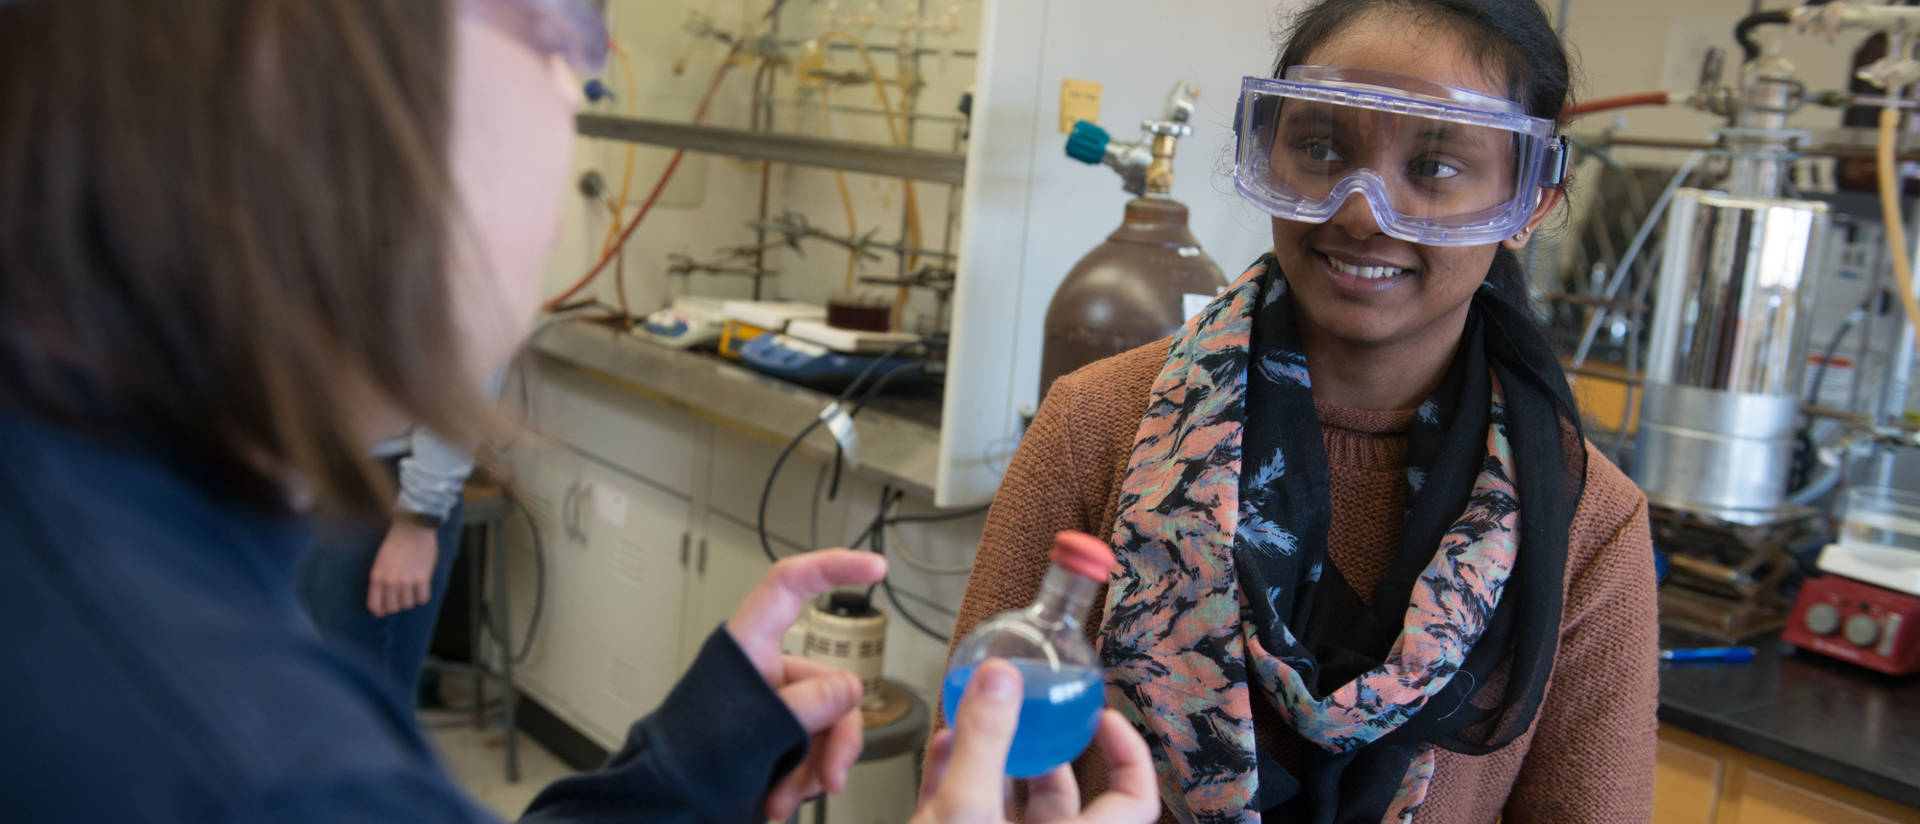 Two female students conducting research in polymers lab on campus